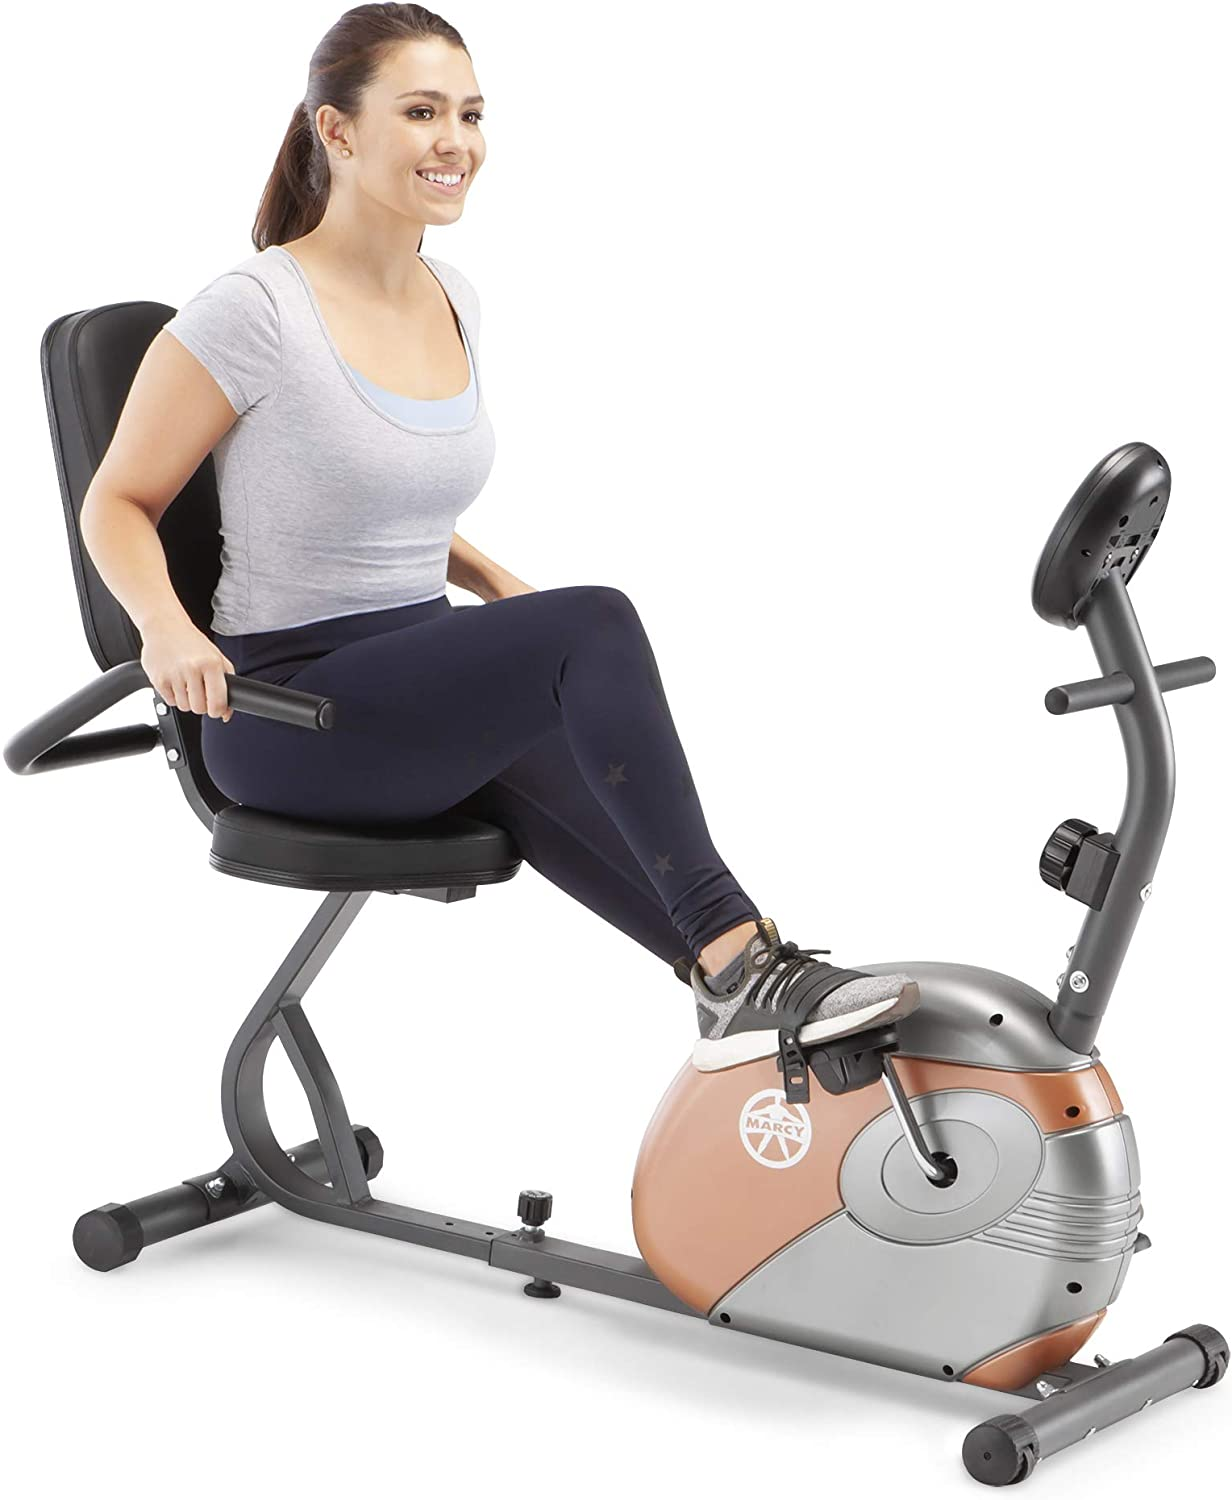 best exercise bike to lose weight: Marcy Recumbent Exercise Bike ME-709